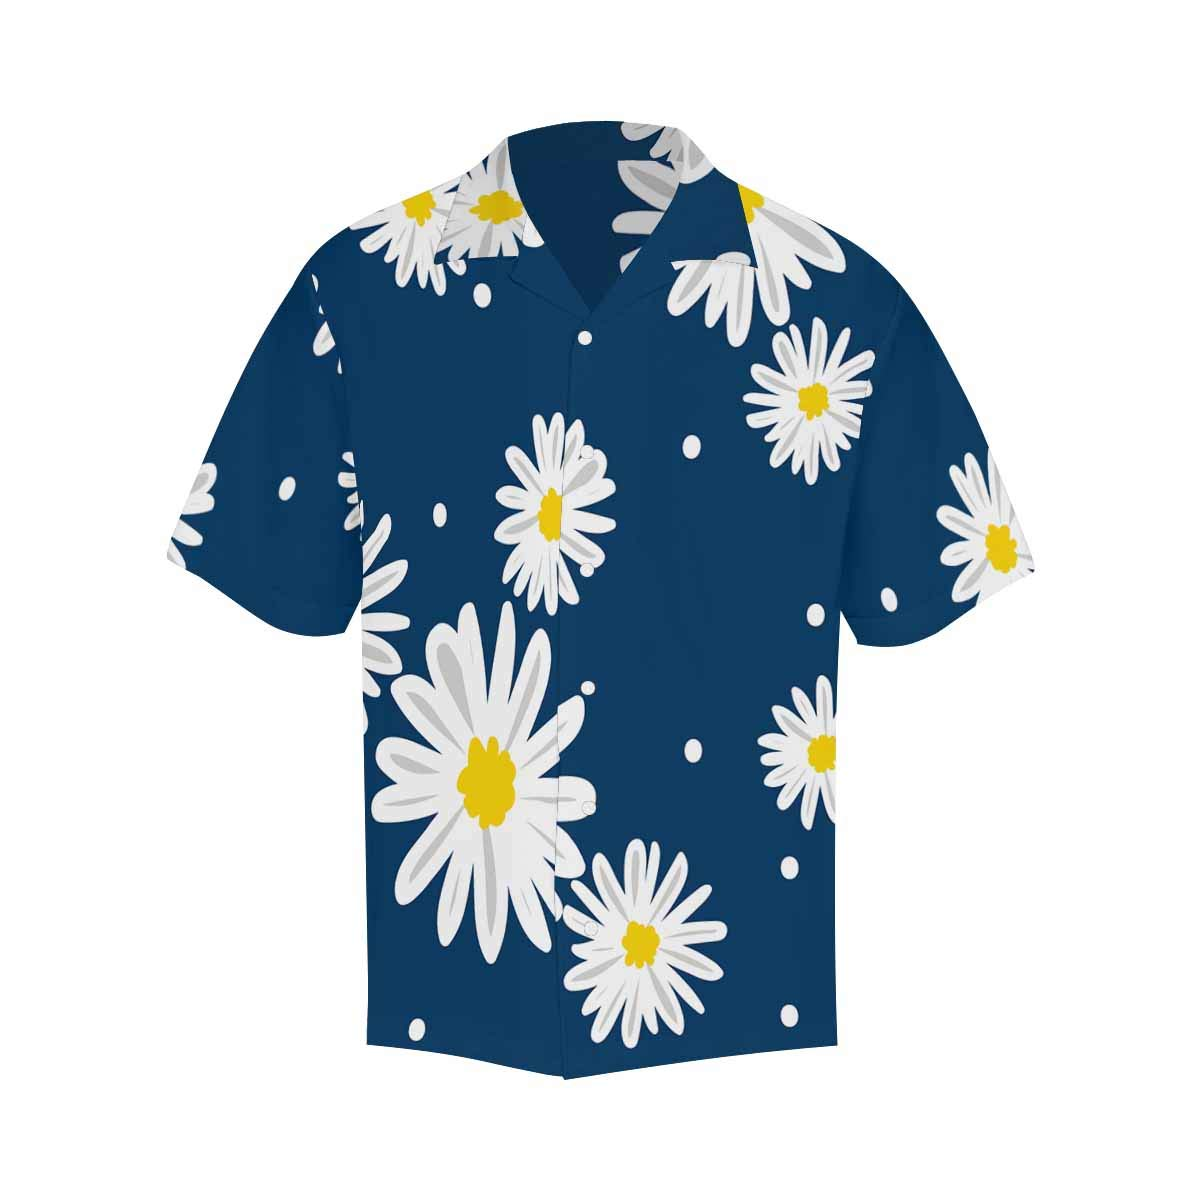 InterestPrint Mens Casual Loose Fit White and Black Flowers Shirt Short Sleeve Button Up Casual Beach Party Tops for Men